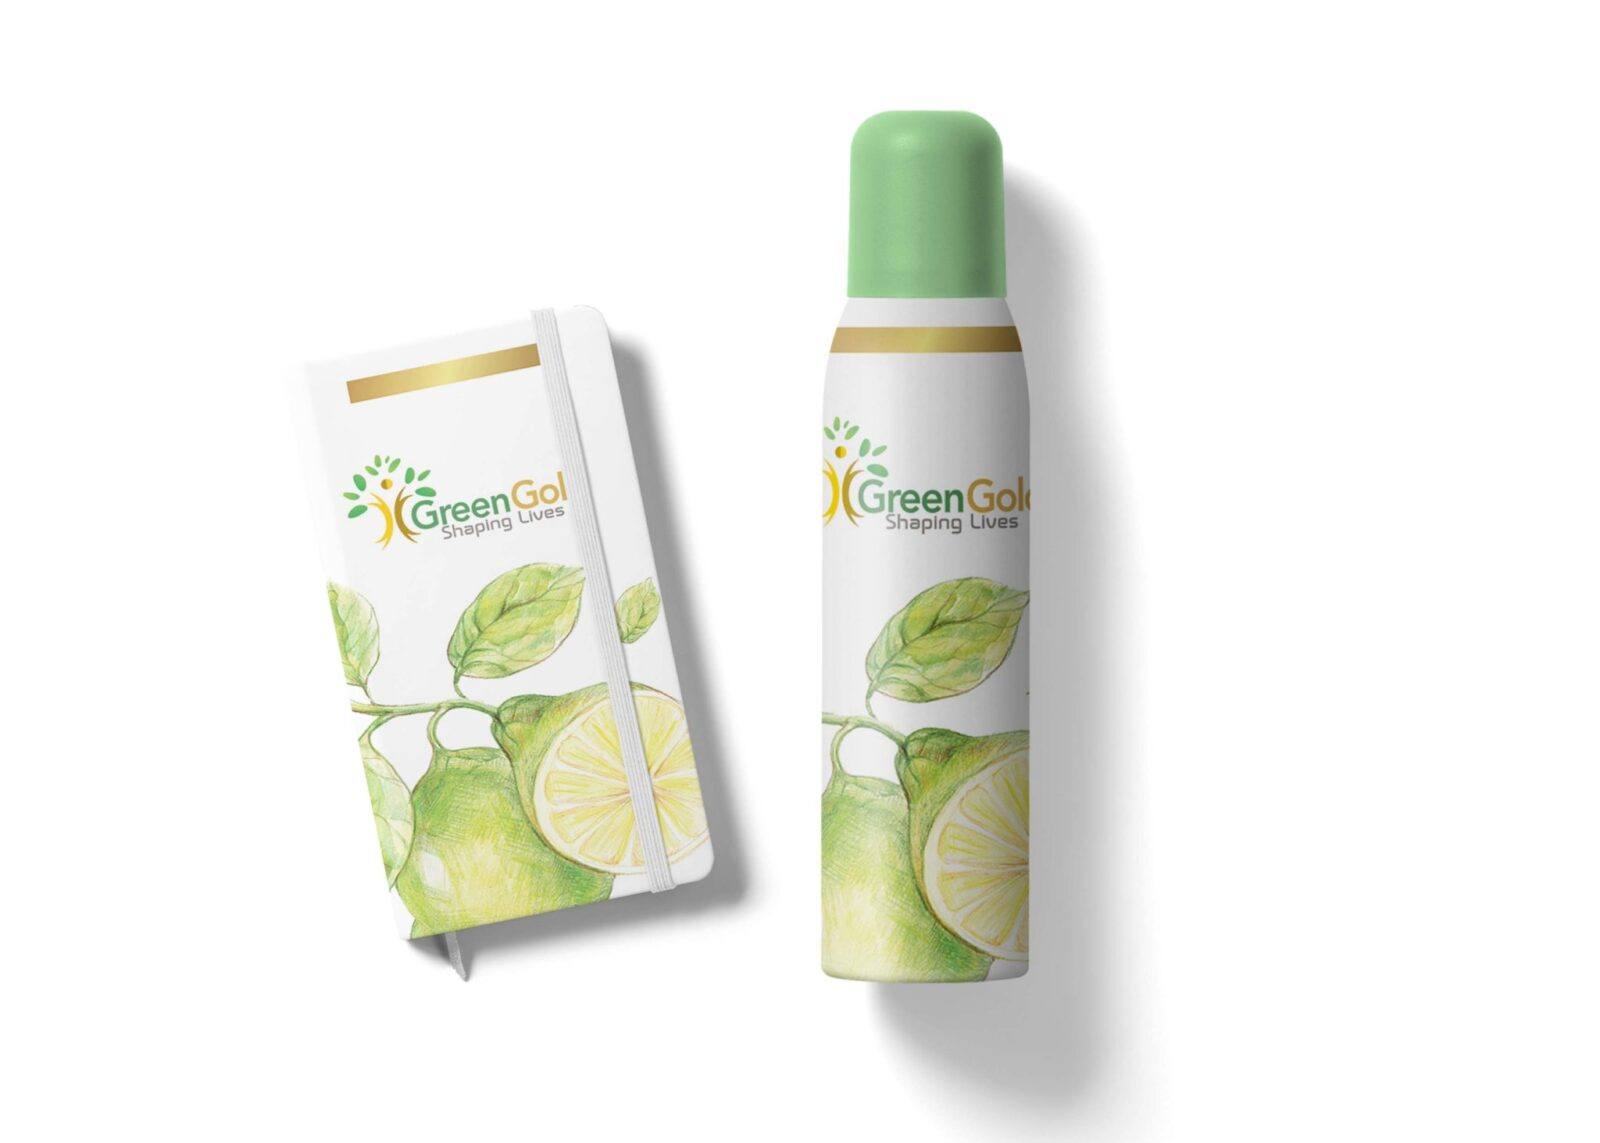 Greengold Deodorant Bottle Label Mockup